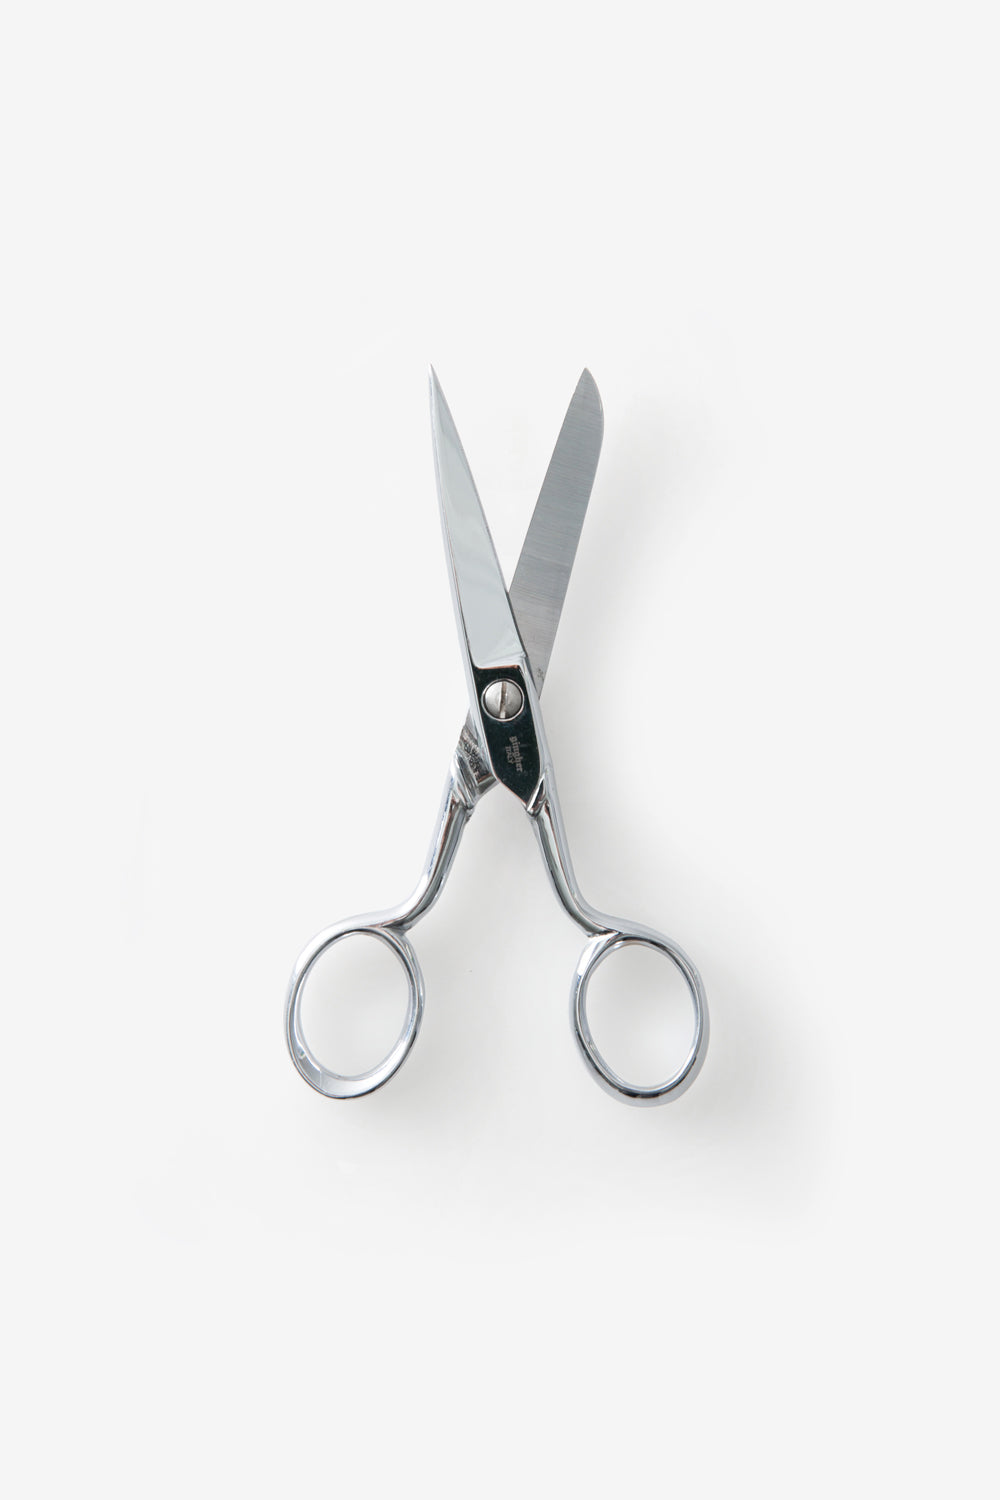 The School of Making Essential Sewing Kit Embroidery Scissors for DIY